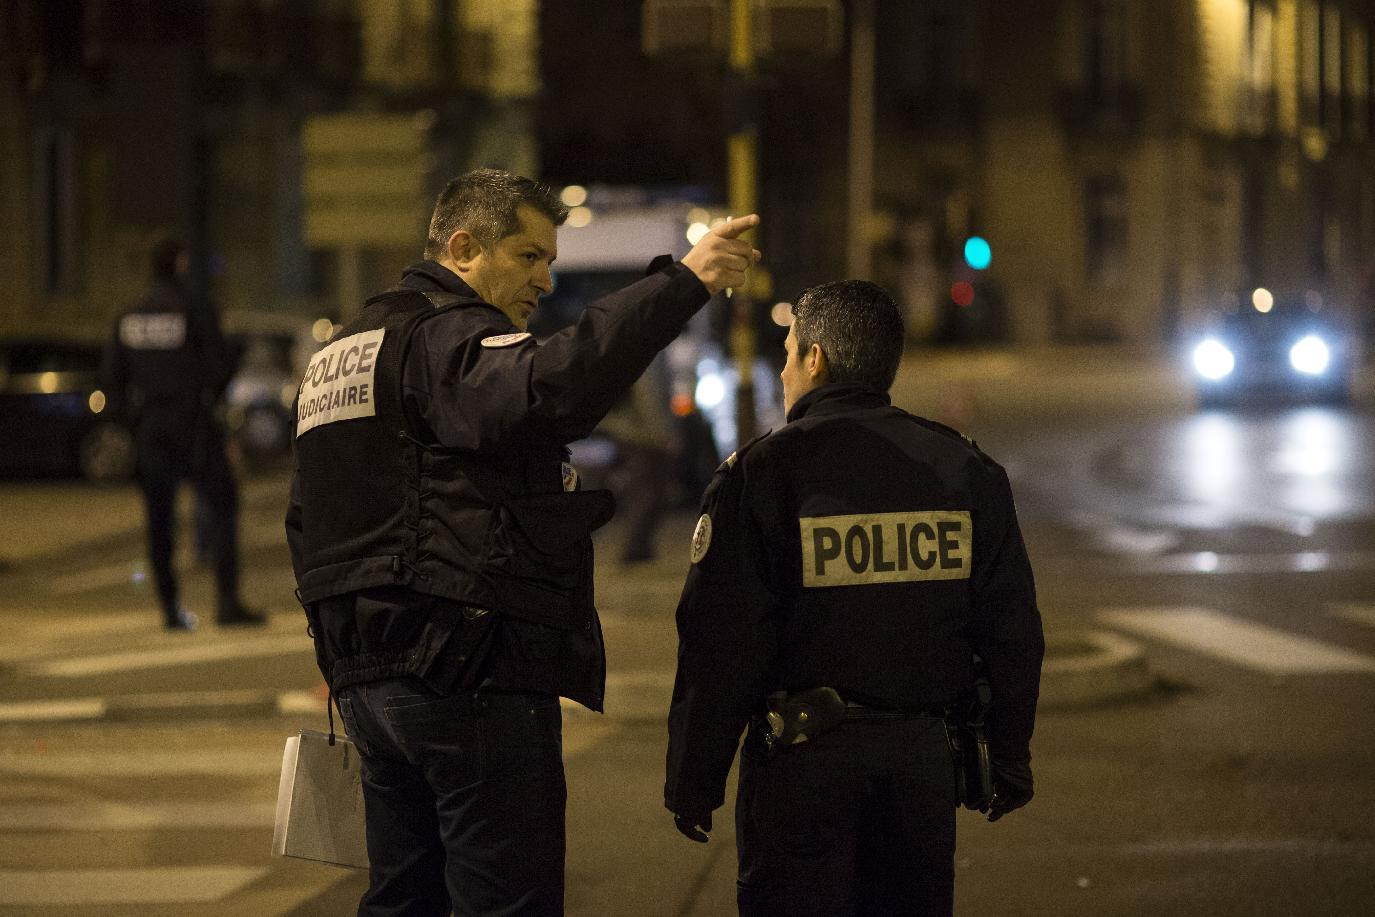 Hollande urges 'utmost vigilance' after weekend attacks